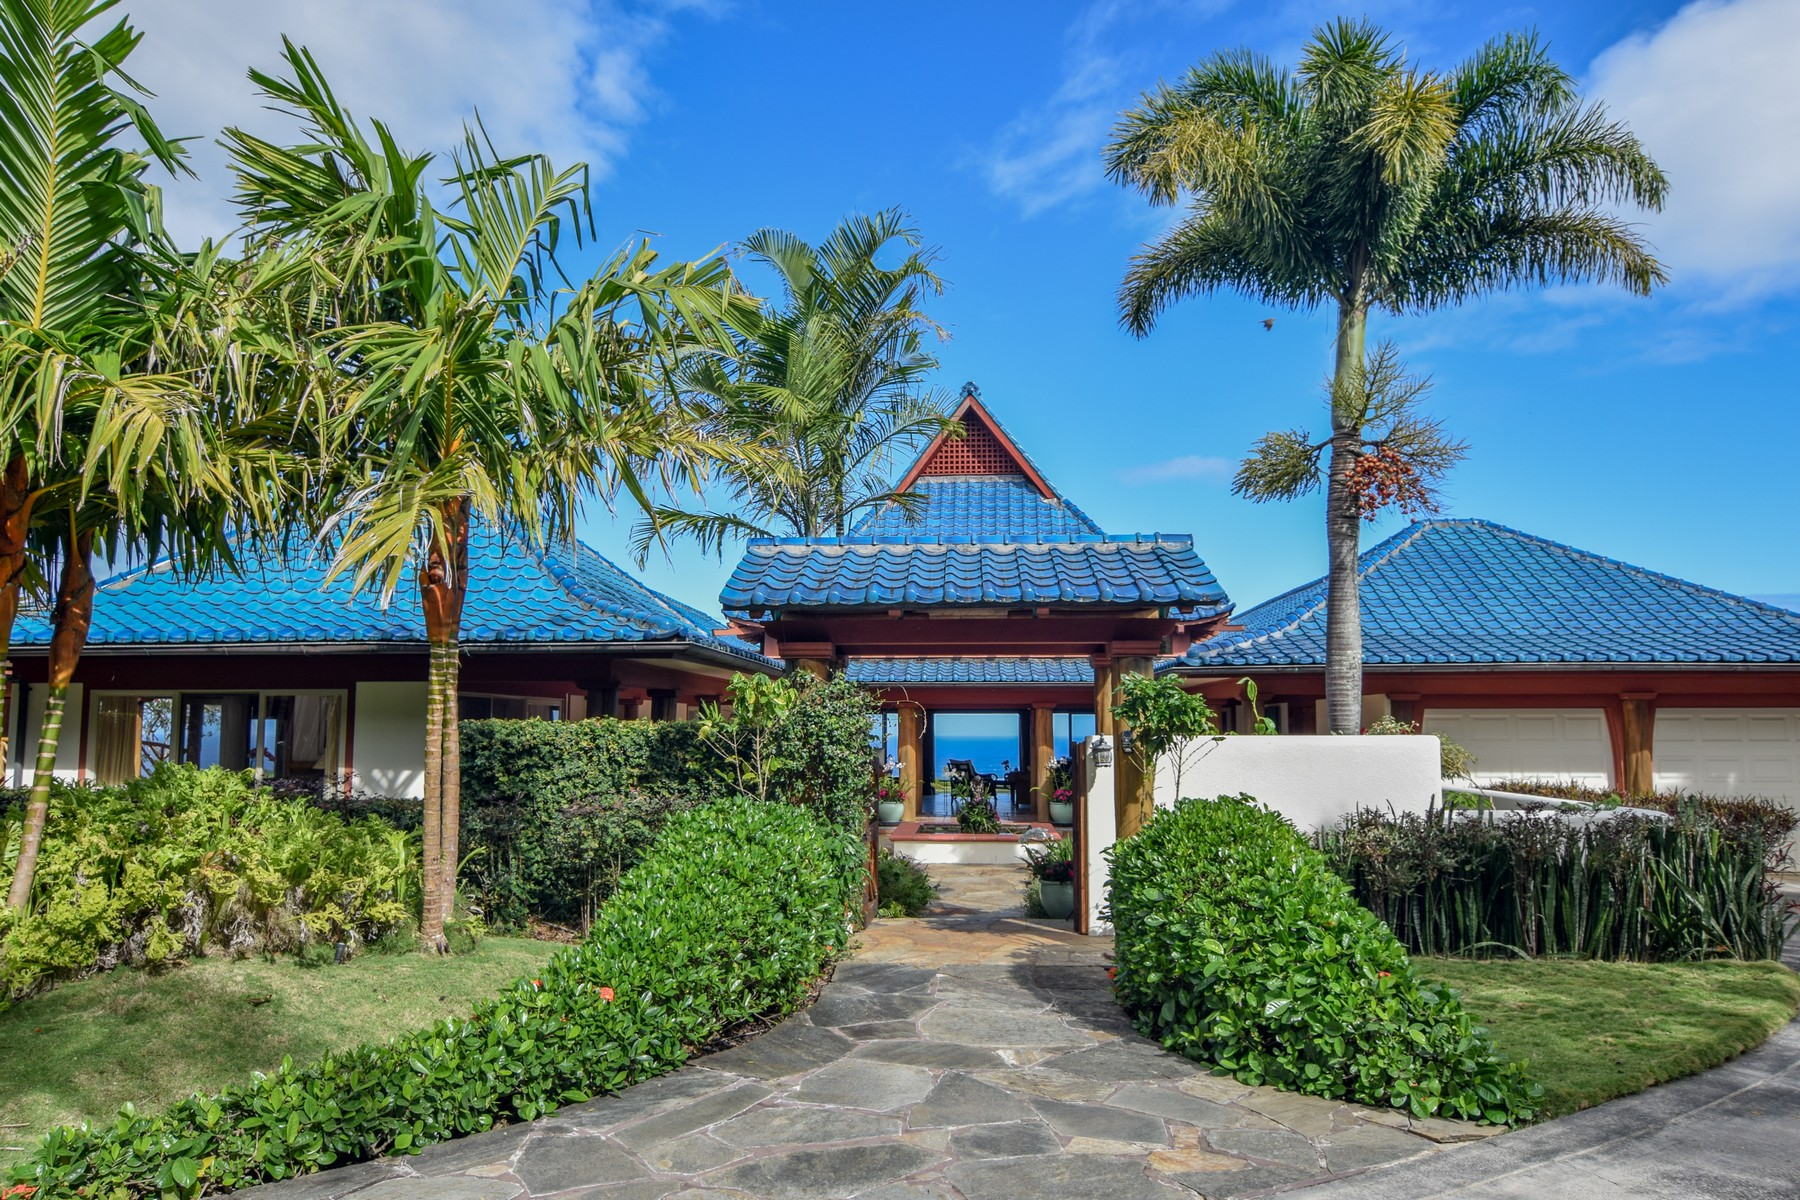 独户住宅 为 销售 在 Ponohouse-Dream Come True of Beautiful, Serene and Private Tropical Lifestyle! 70 Pono Road Haiku, 夏威夷 96708 美国